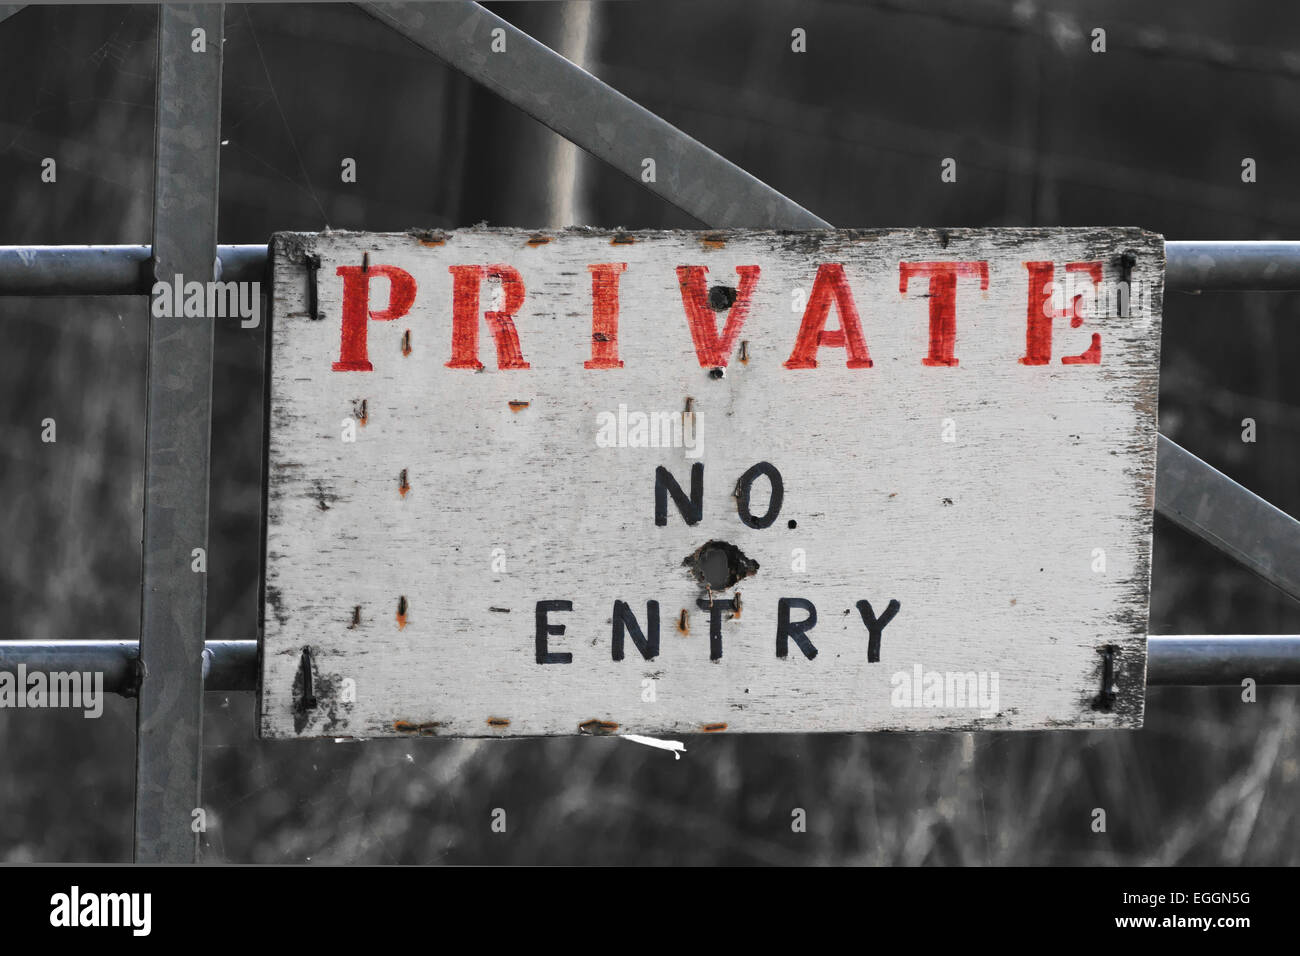 private no entry sign on metal gate with prominent red and black letters on white standing out against monochrome Stock Photo